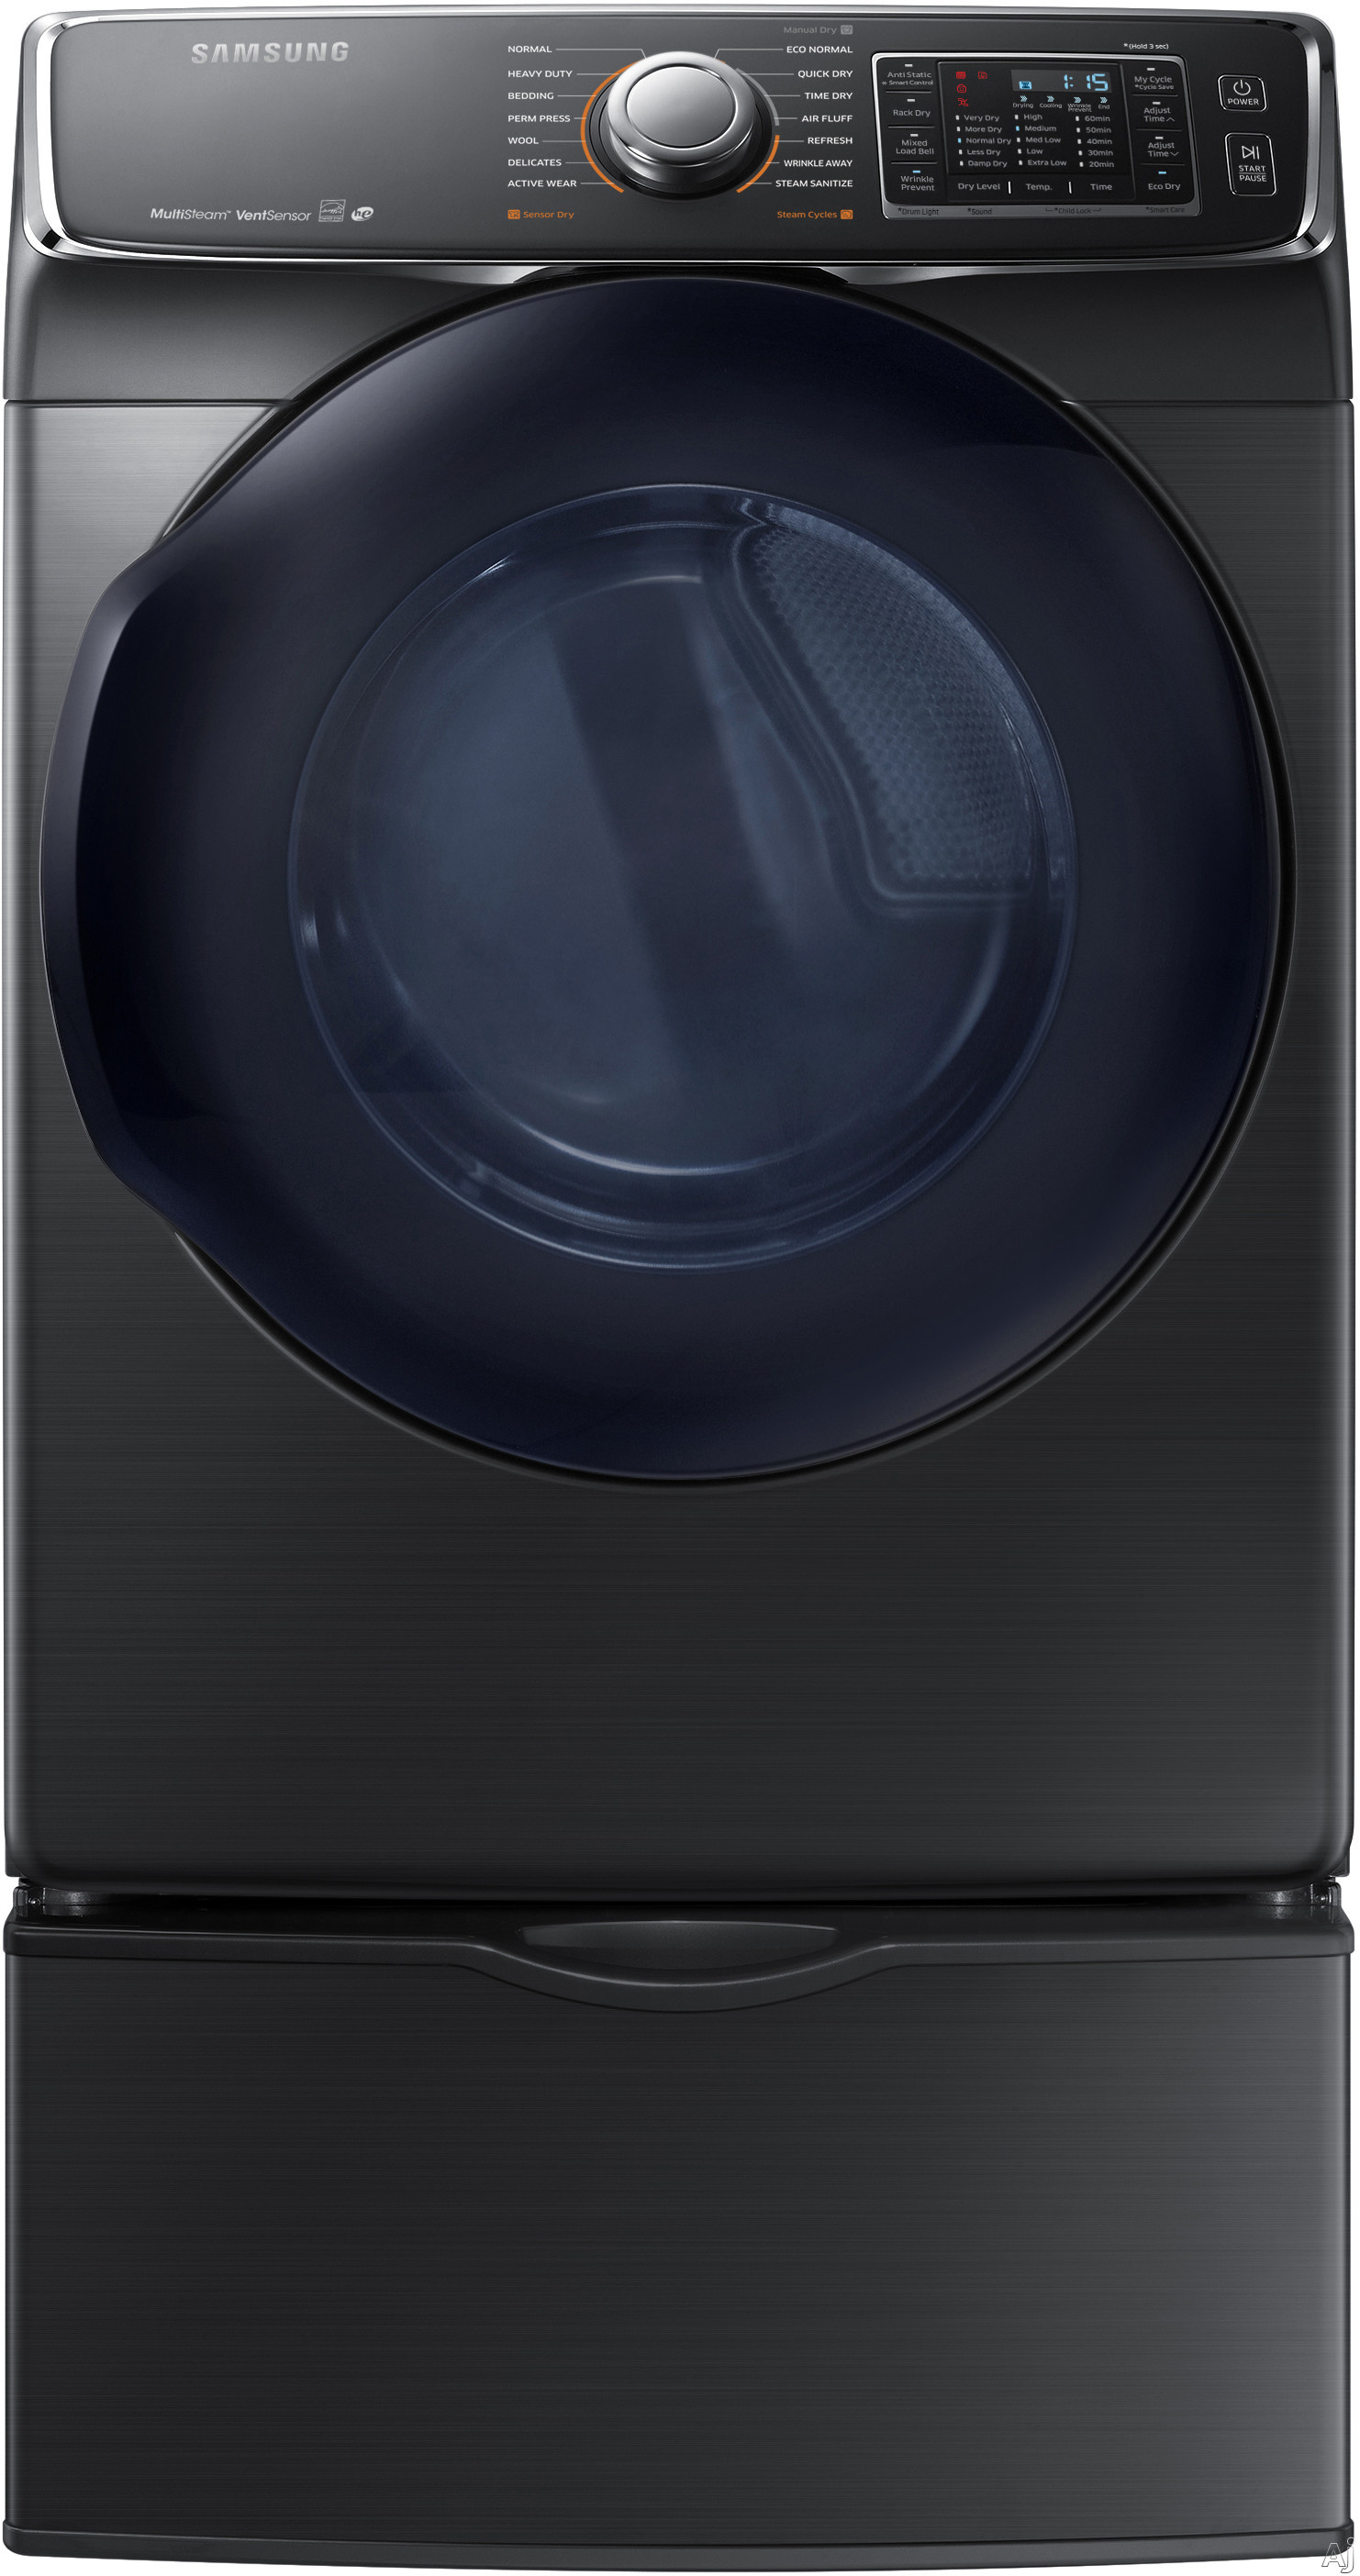 Samsung - 7.5 Cu. Ft. 14-Cycle High-Efficiency Electric Dryer with Steam - Black Stainless DV50K7500EV